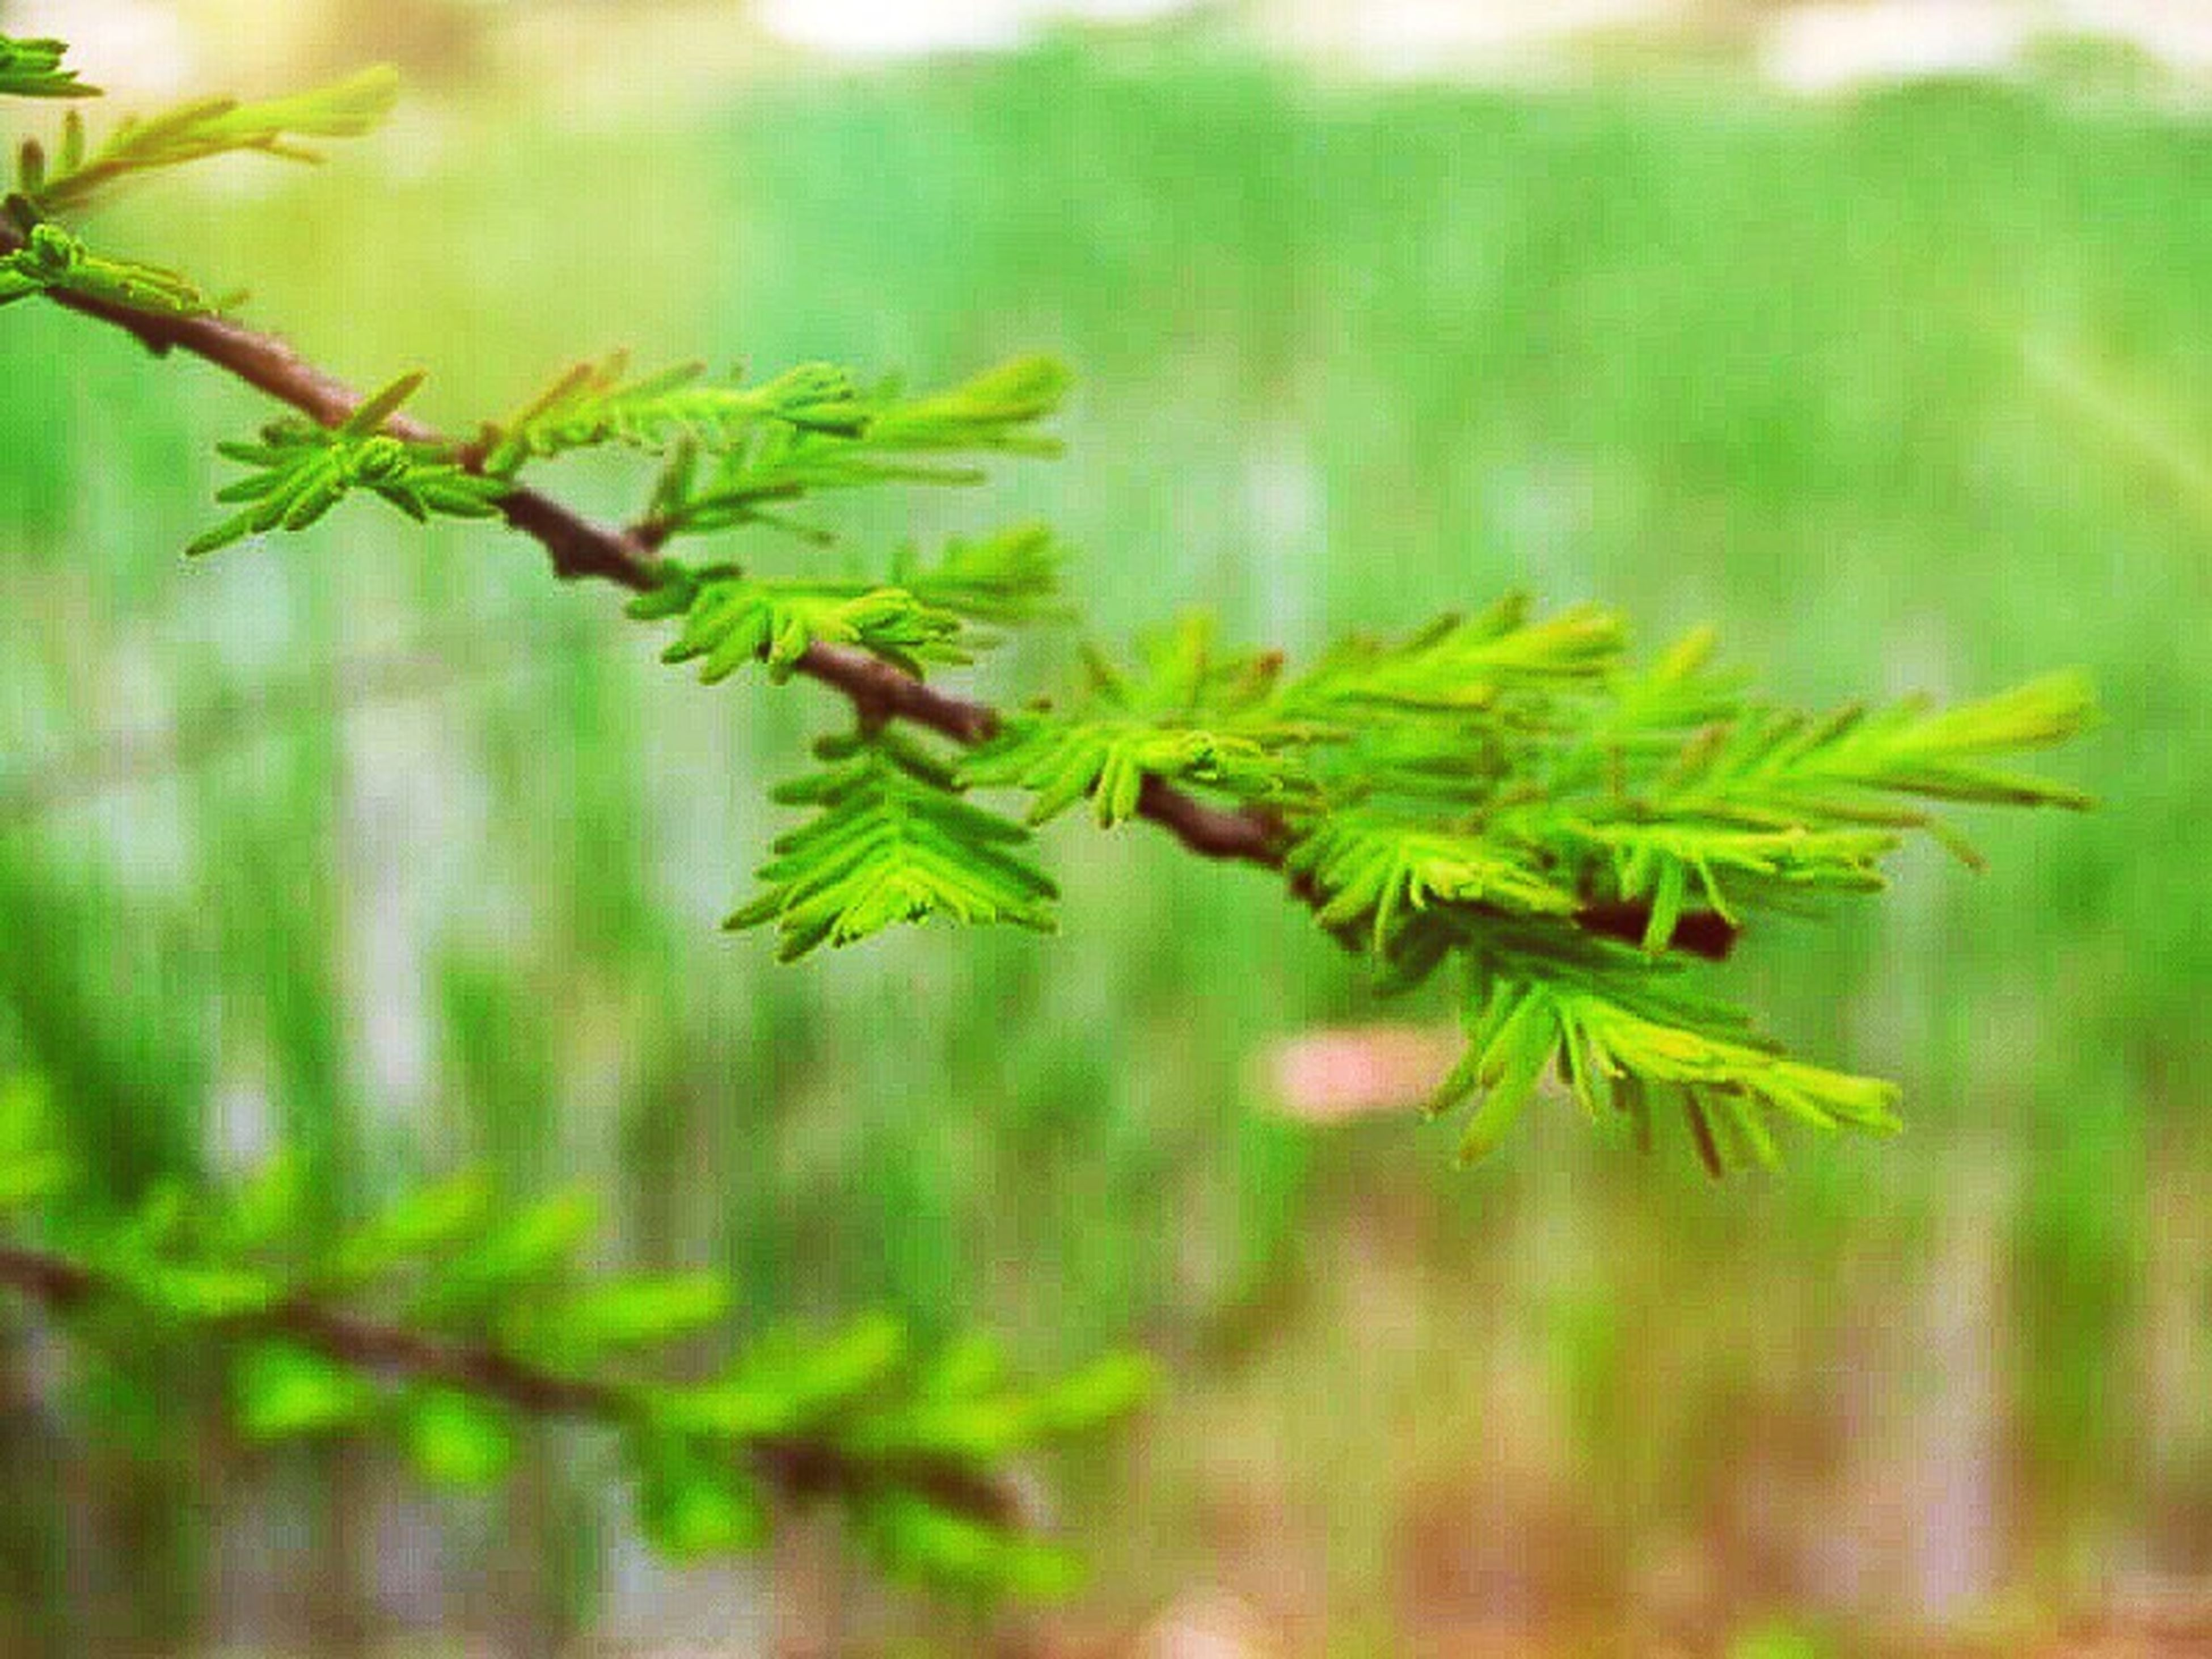 leaf, growth, green color, focus on foreground, plant, close-up, nature, selective focus, tranquility, beauty in nature, growing, leaves, stem, branch, botany, day, green, outdoors, freshness, no people